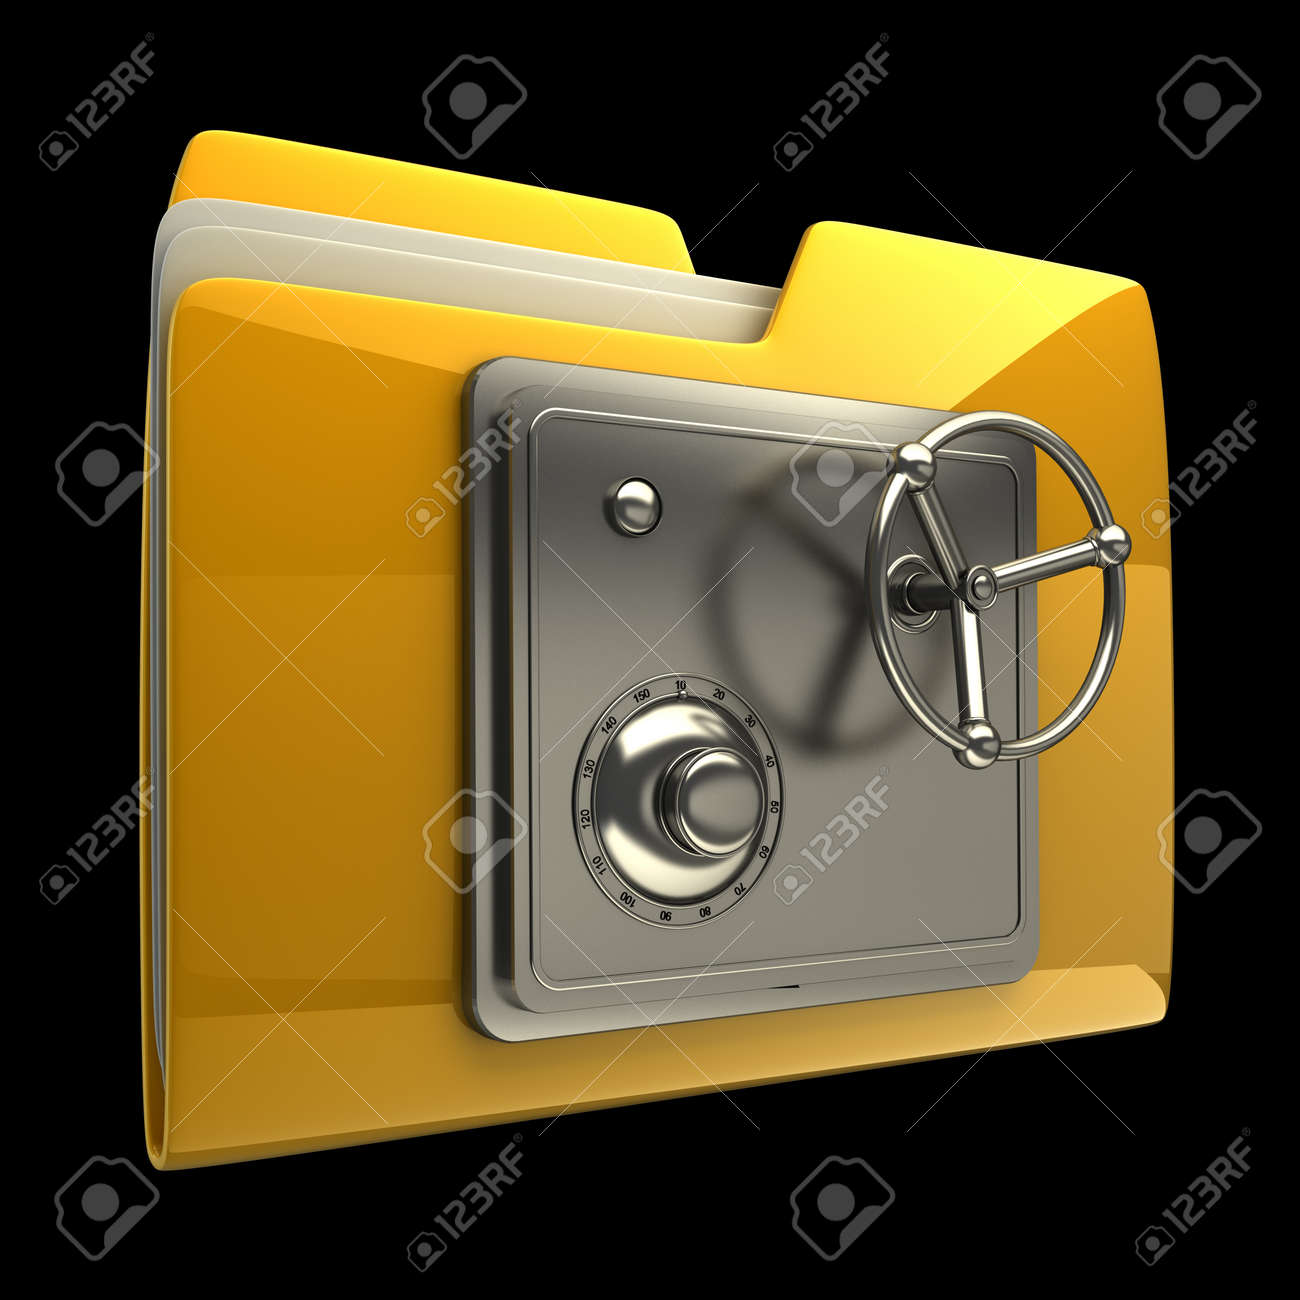 3d illustration of folder icon with security lock dial isolated on black background High resolution 3D Stock Photo - 12980387